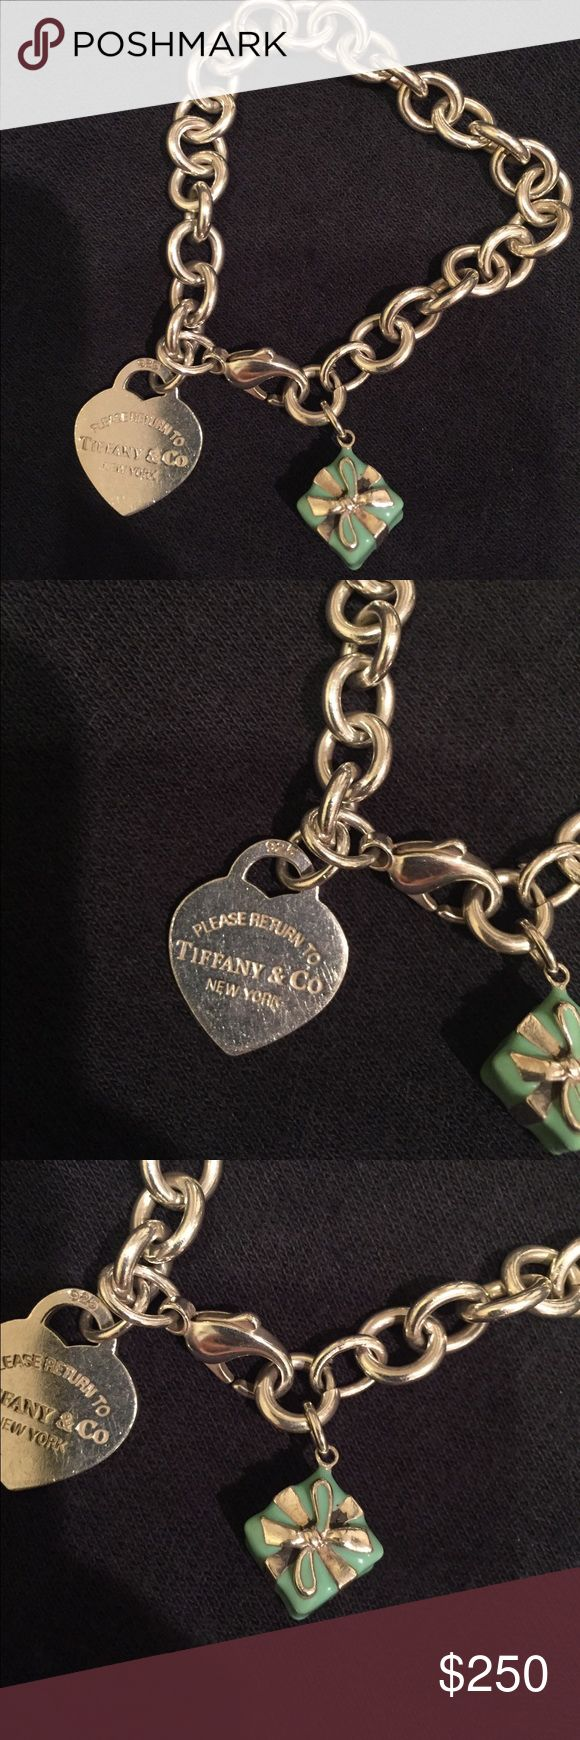 Tiffany charm bracelet Great condition. Comes with pouch and box. Tiffany & Co. Jewelry Bracelets